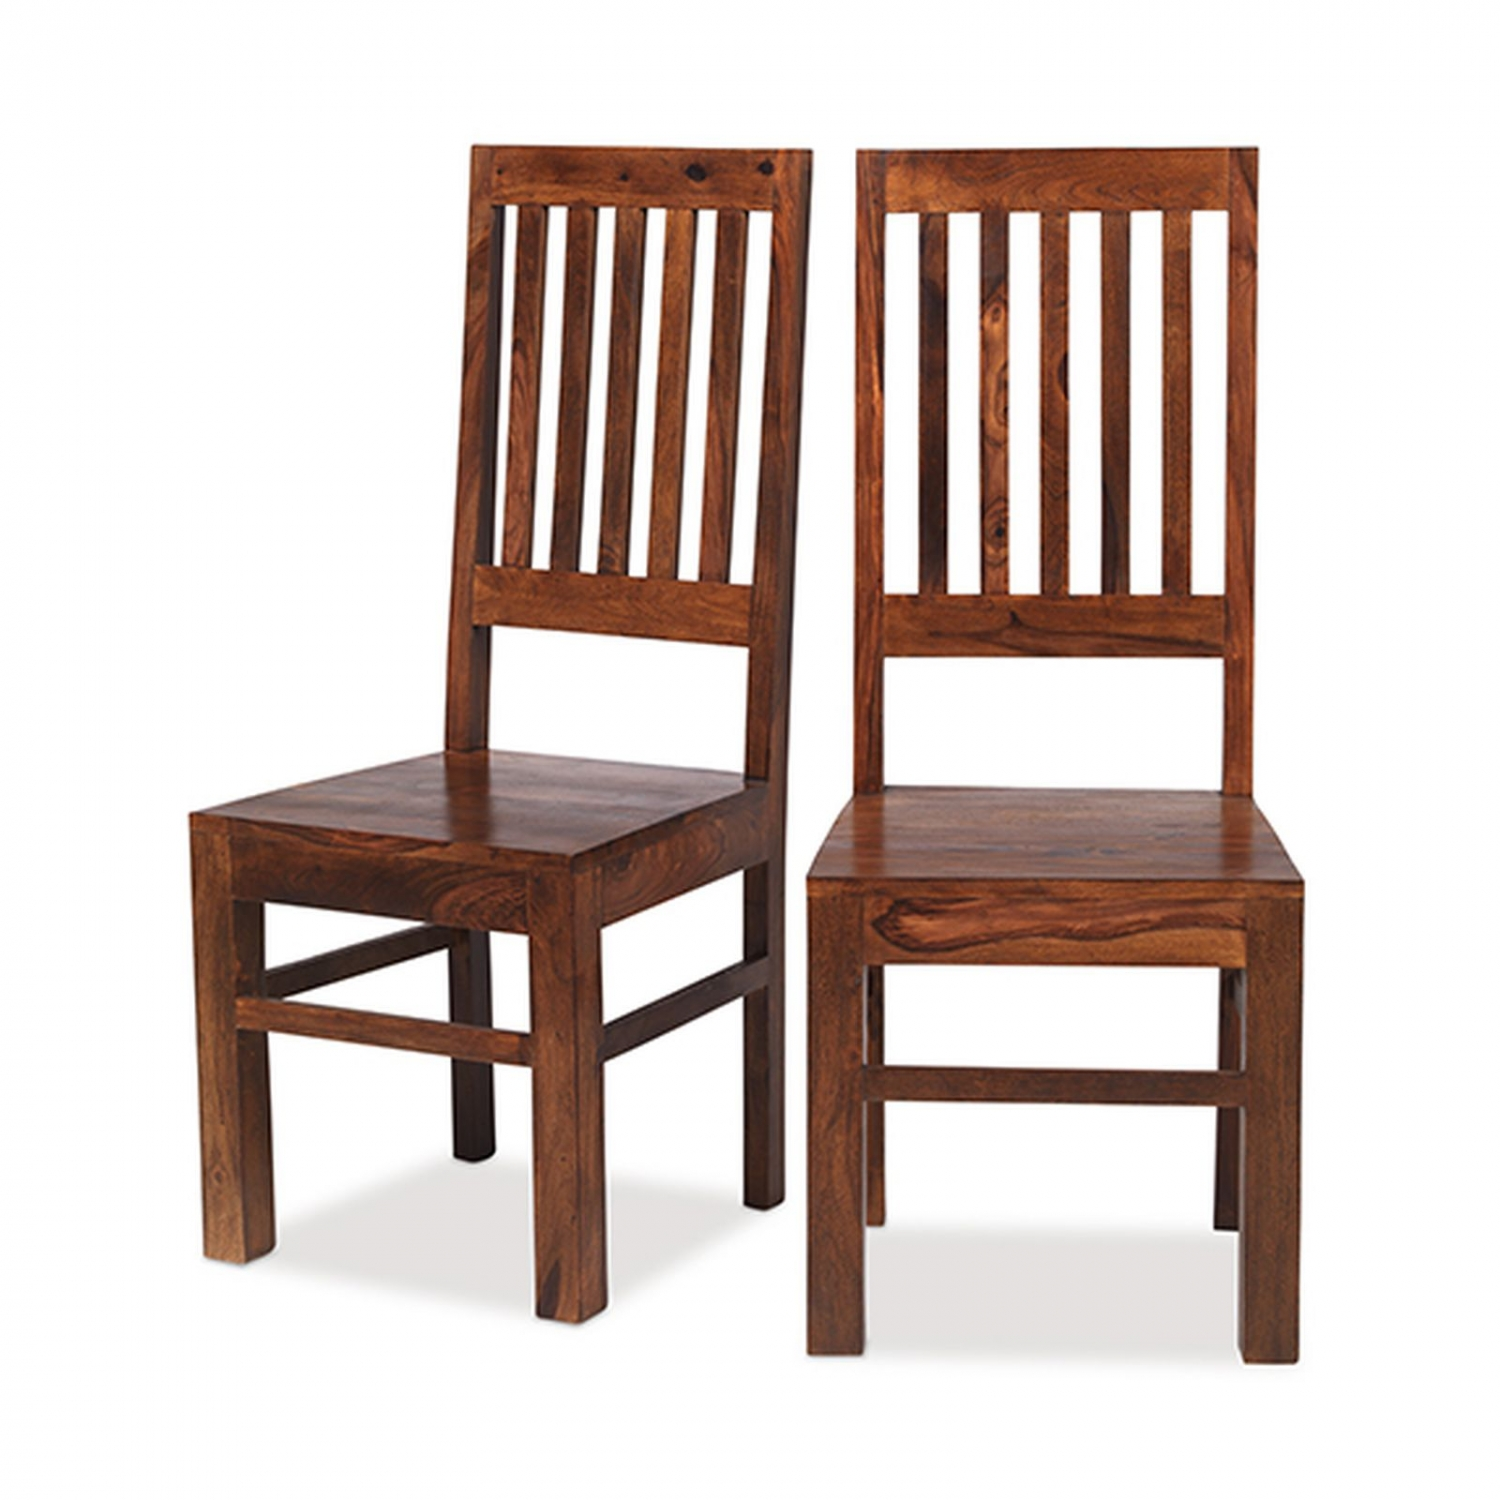 Bengal Sheesham Indian Furniture Set Of Six High Back Slatted Dining Chairs